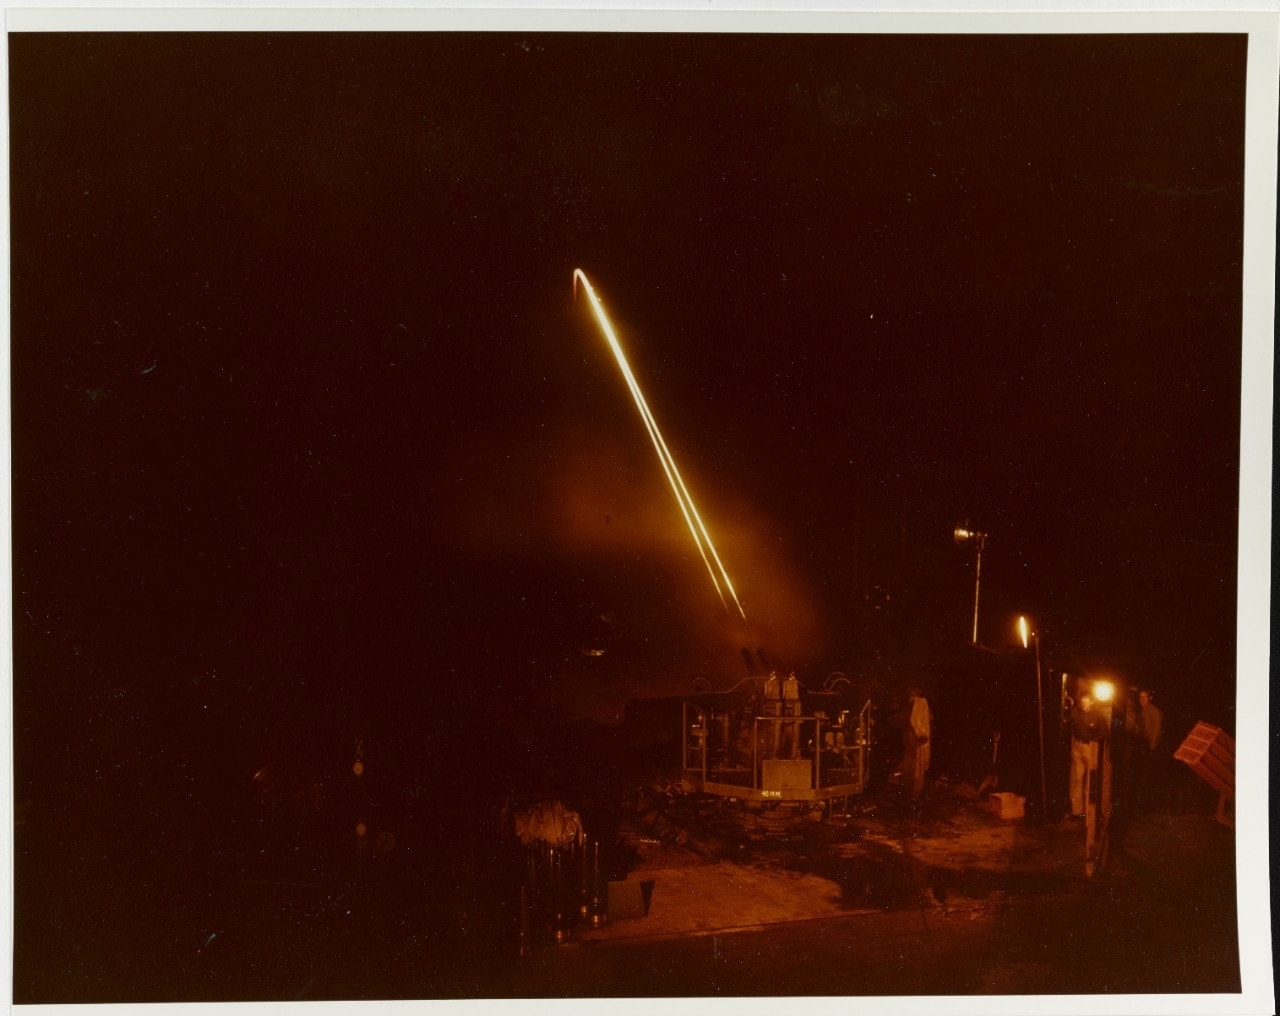 80-G-K-13598 Dahlgren Tracer bullets from a twin 40mm machine gun mount arc across the sky, aimed at targets in the Potomac River,